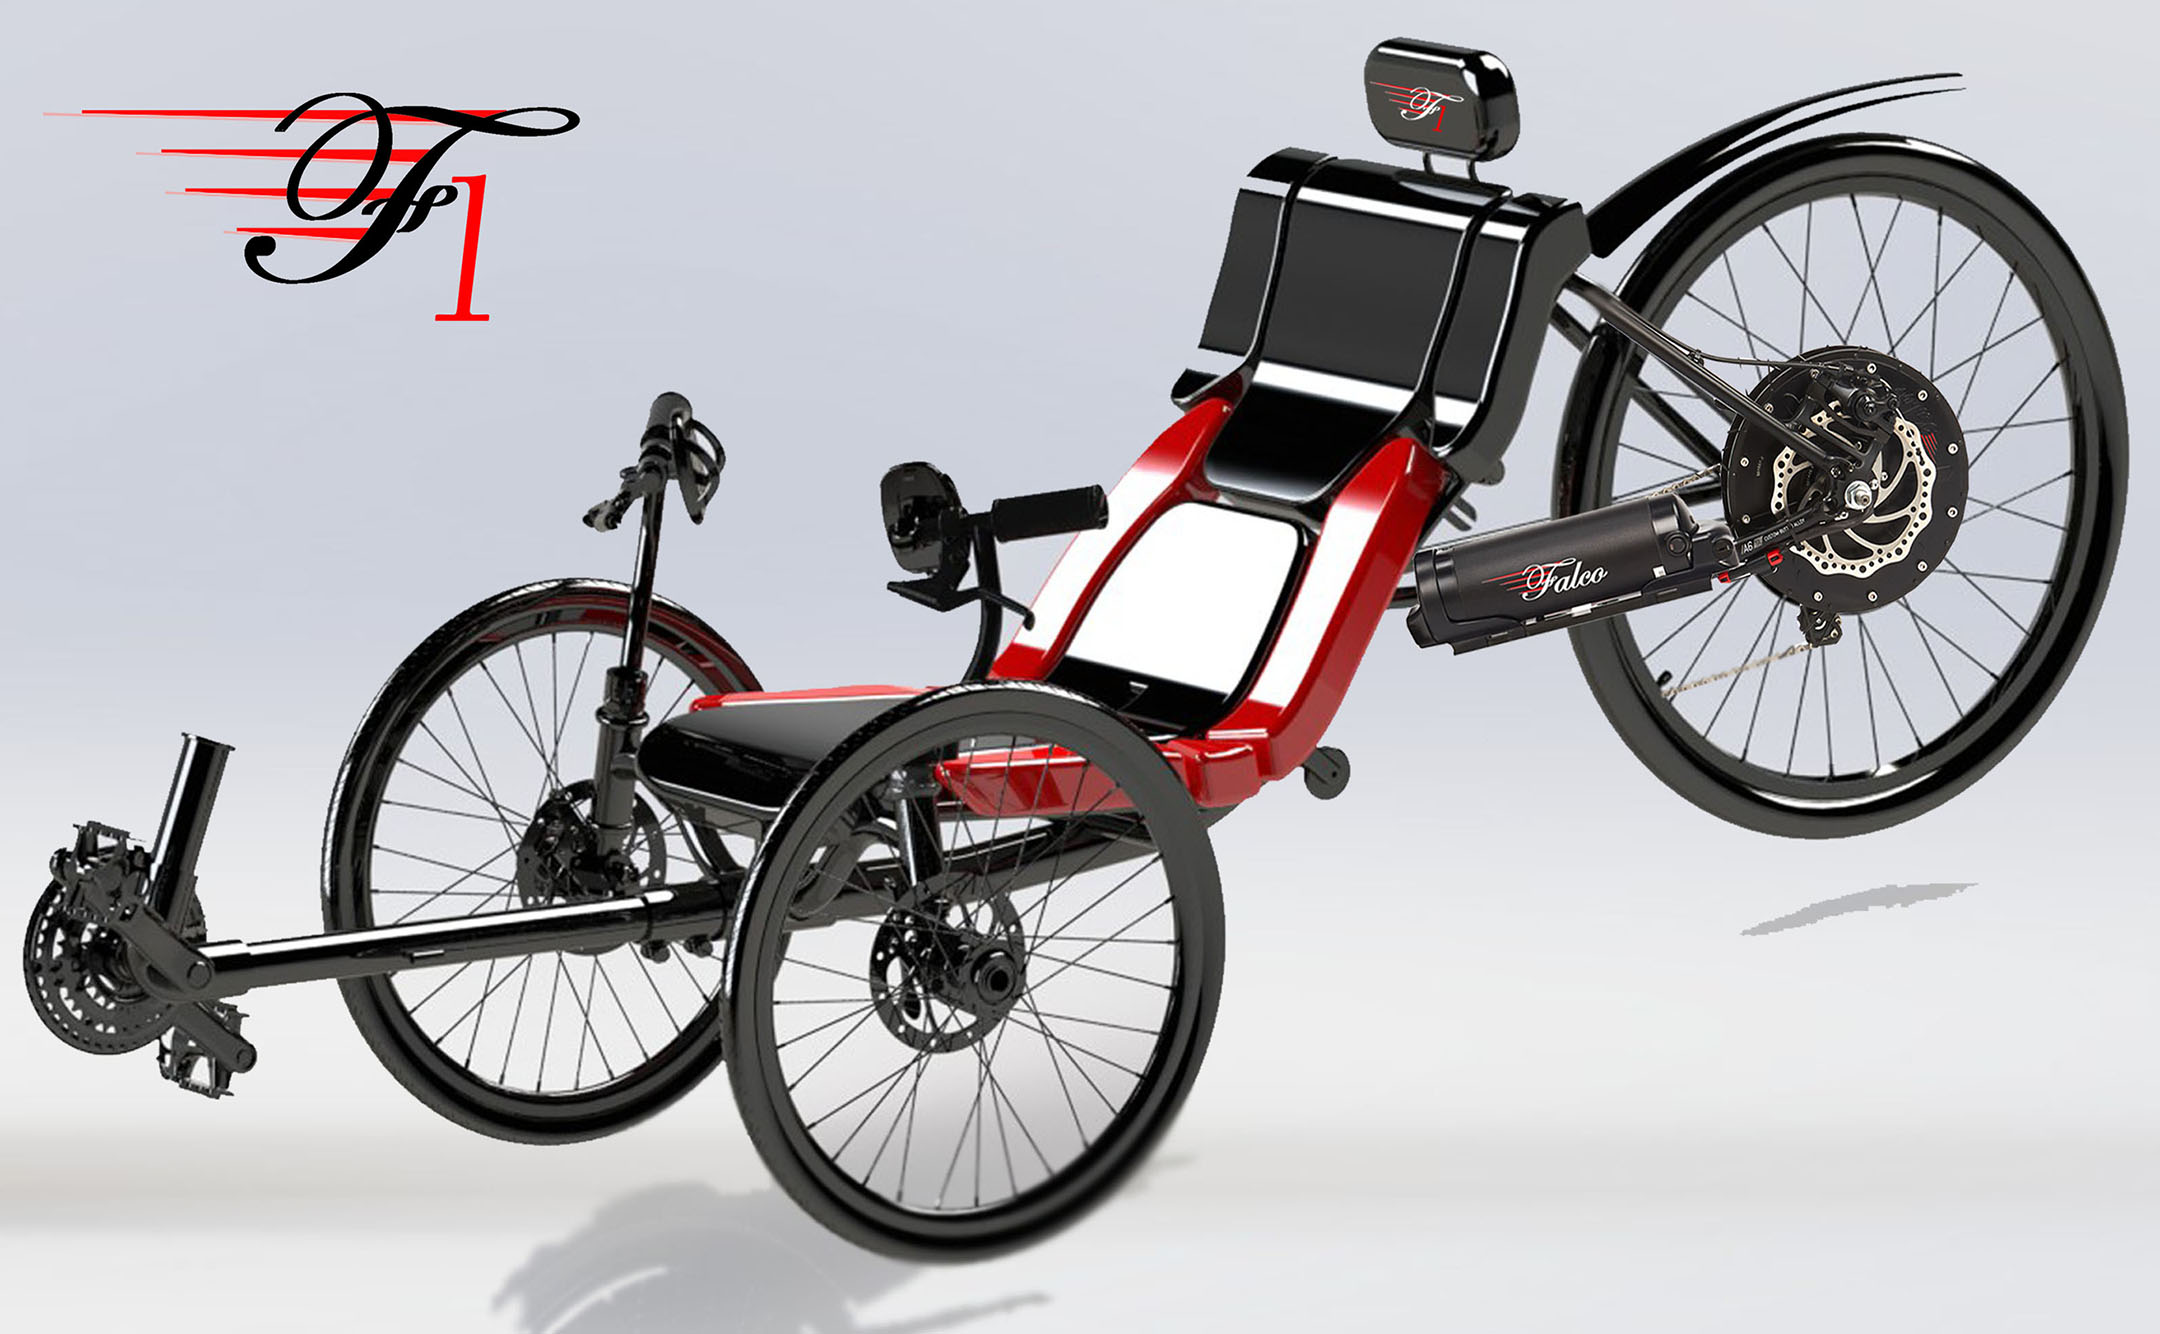 The Electric Vehicle Falco One eTrike